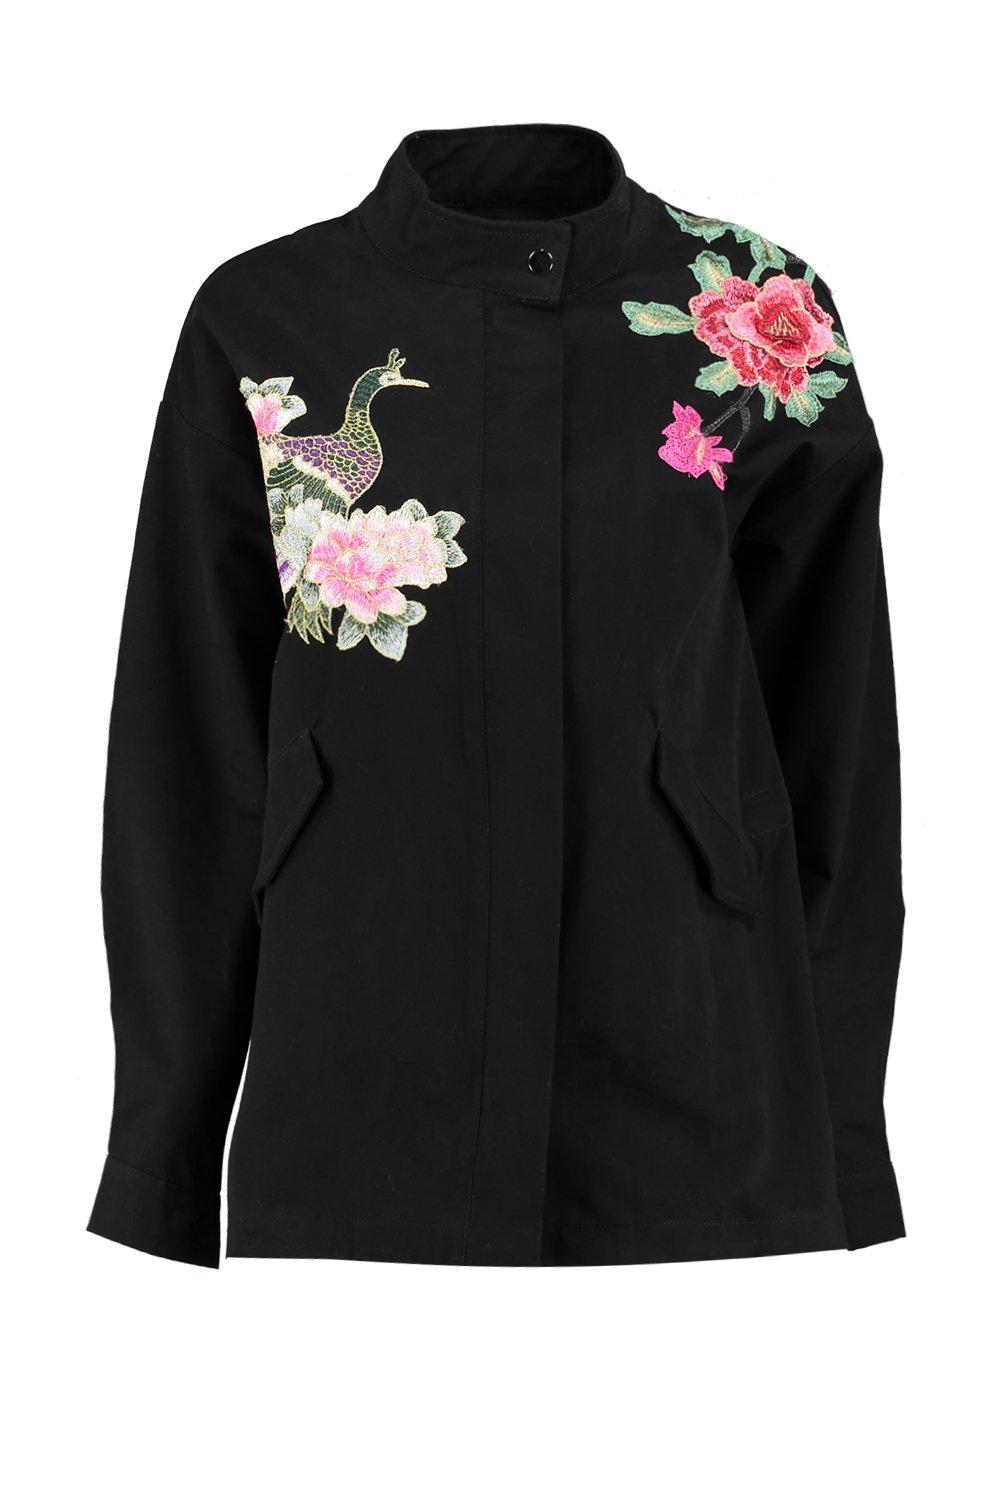 Boohoo womens lucy boutique floral embroidered utility